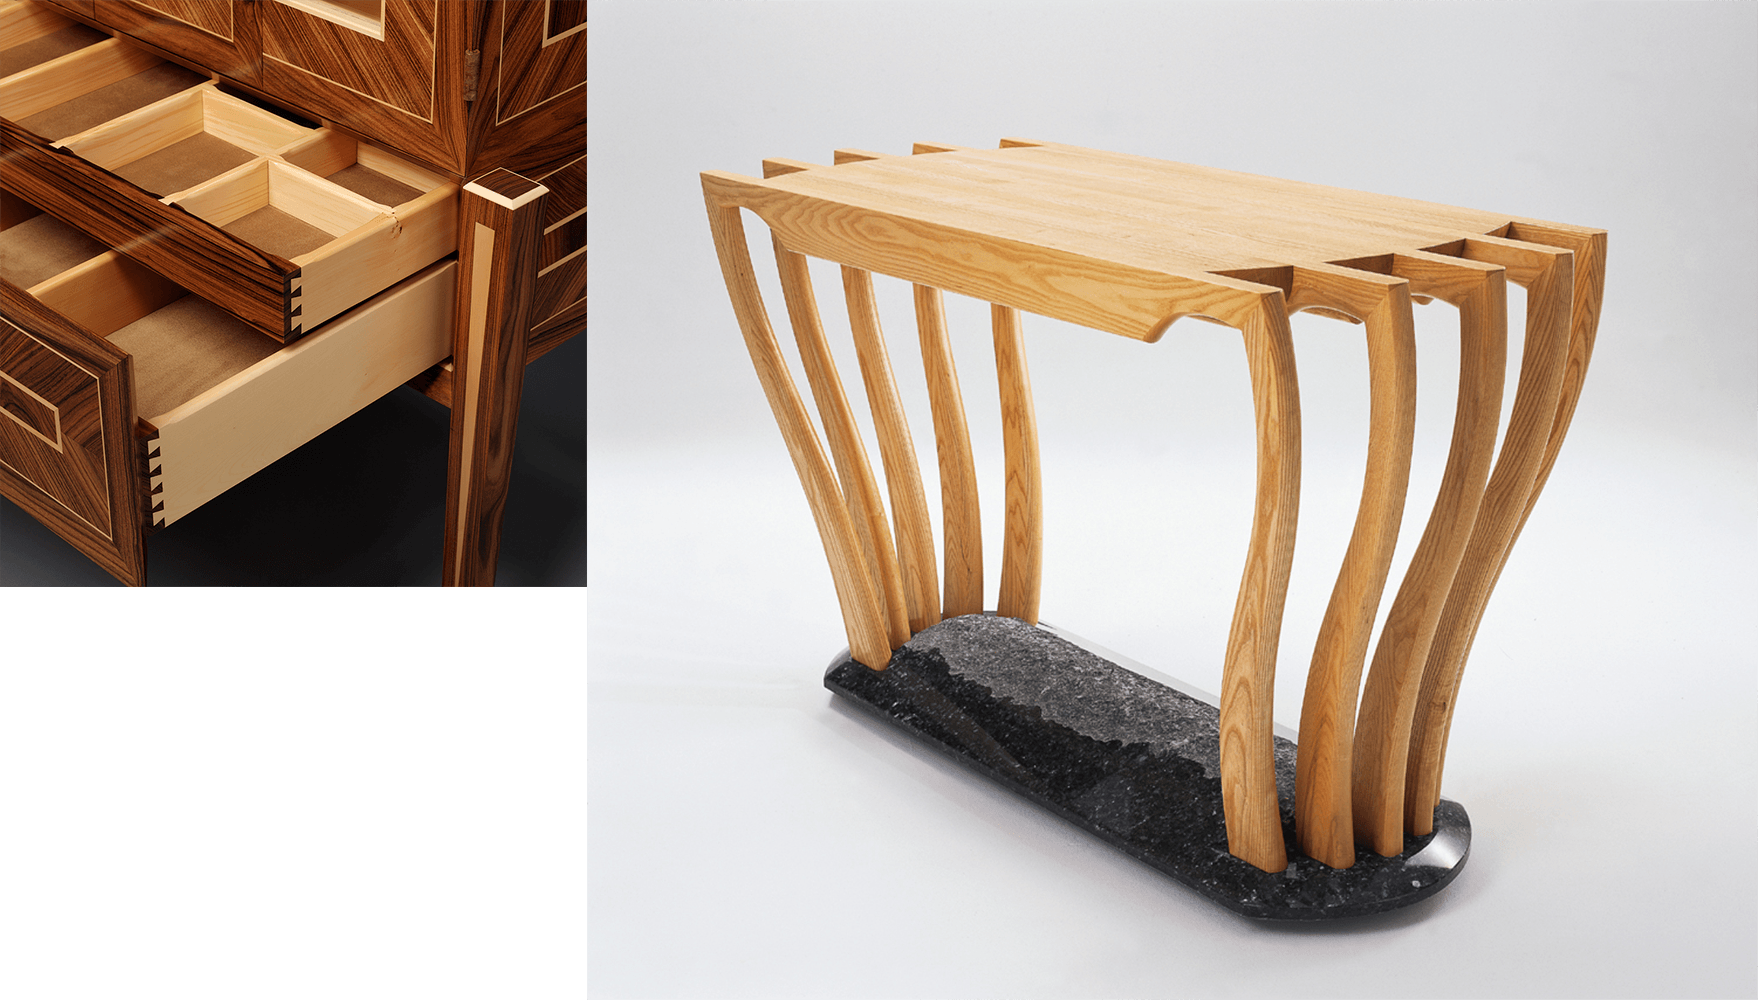 Liturgical Furniture piece by custom designer-maker Gray Hawk